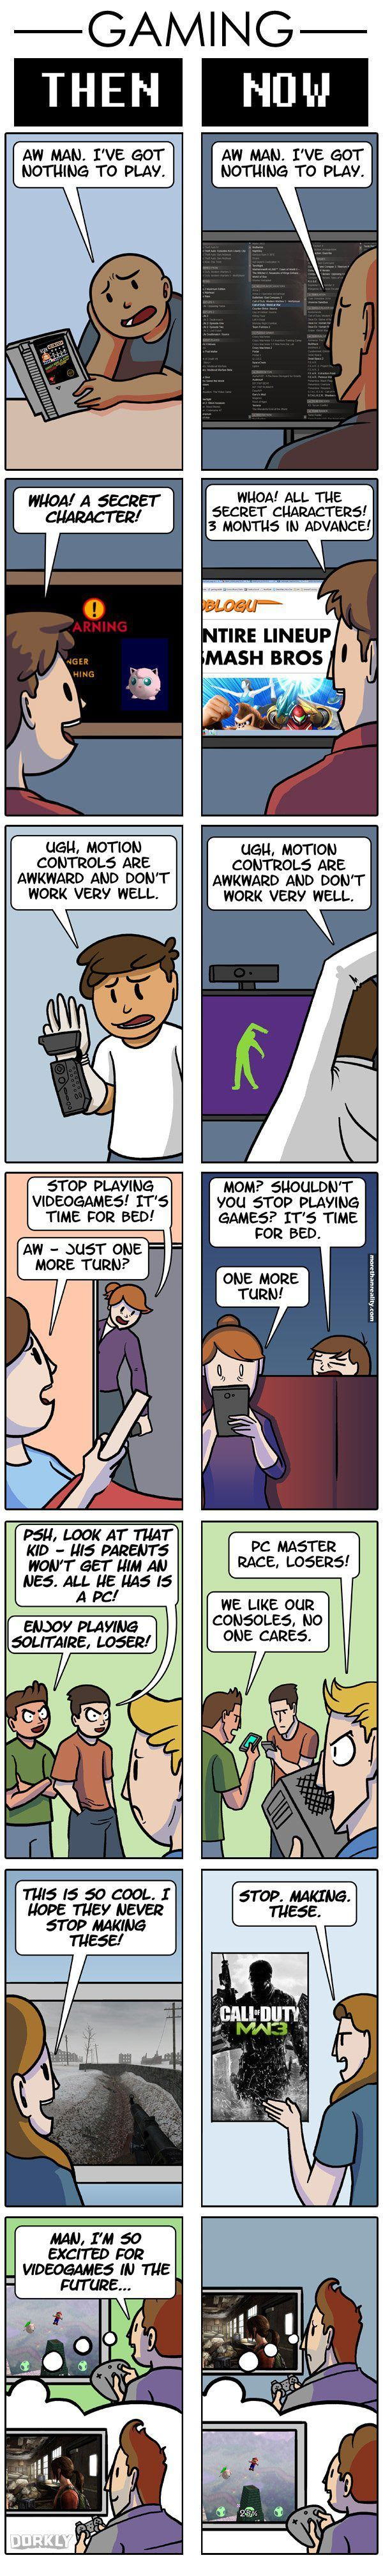 The true story of Then and Now in Videogames